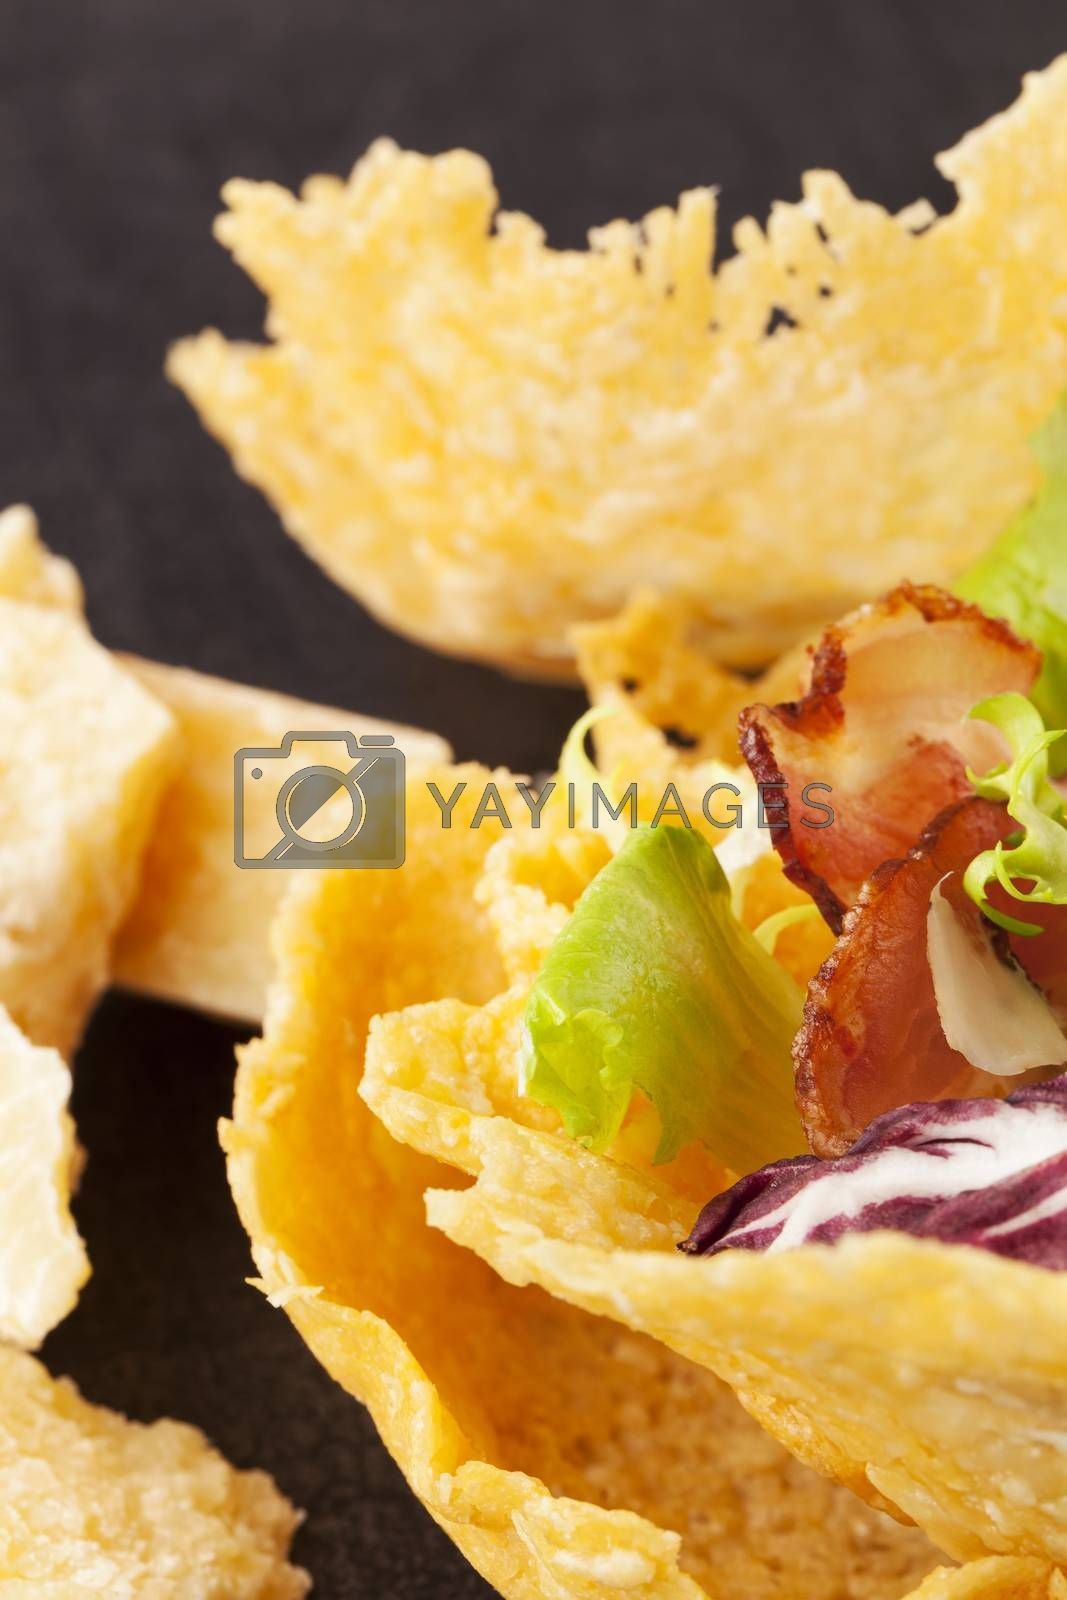 Parmigiano cheese basket filled with colorful vegetable and bacon. Luxurious cheese eating.